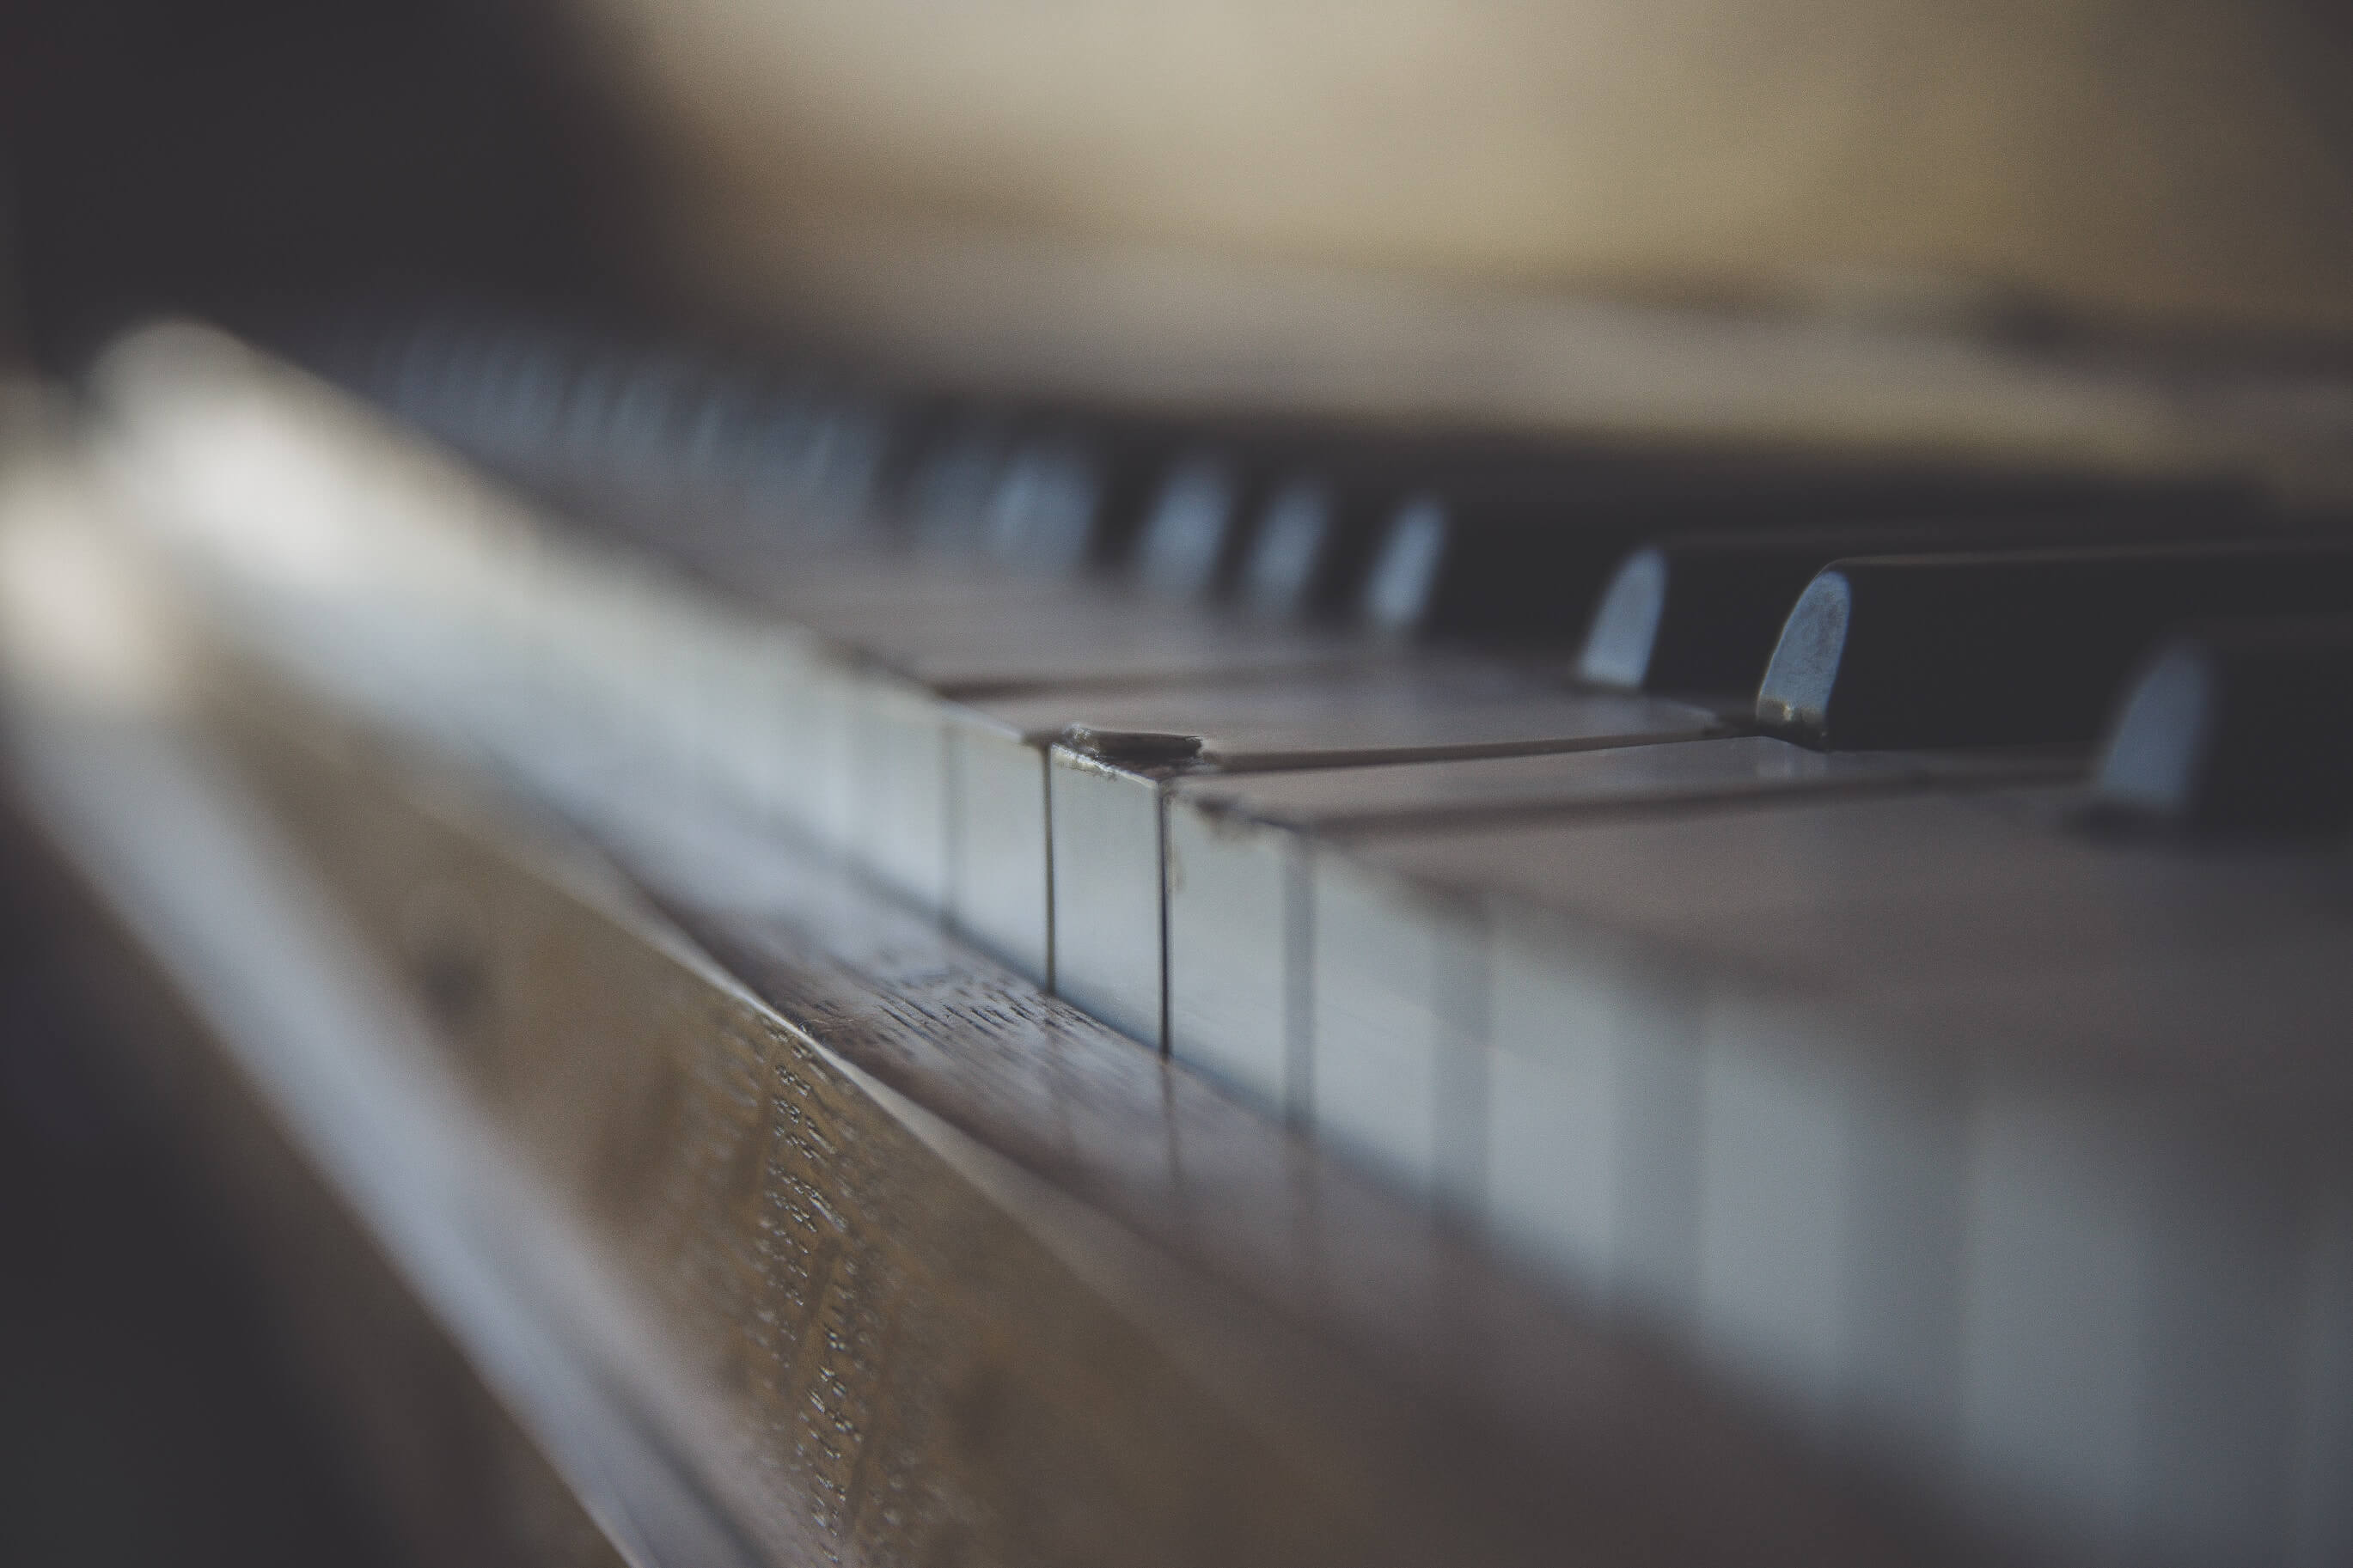 Broken piano - by Ryan Holloway on Unsplash